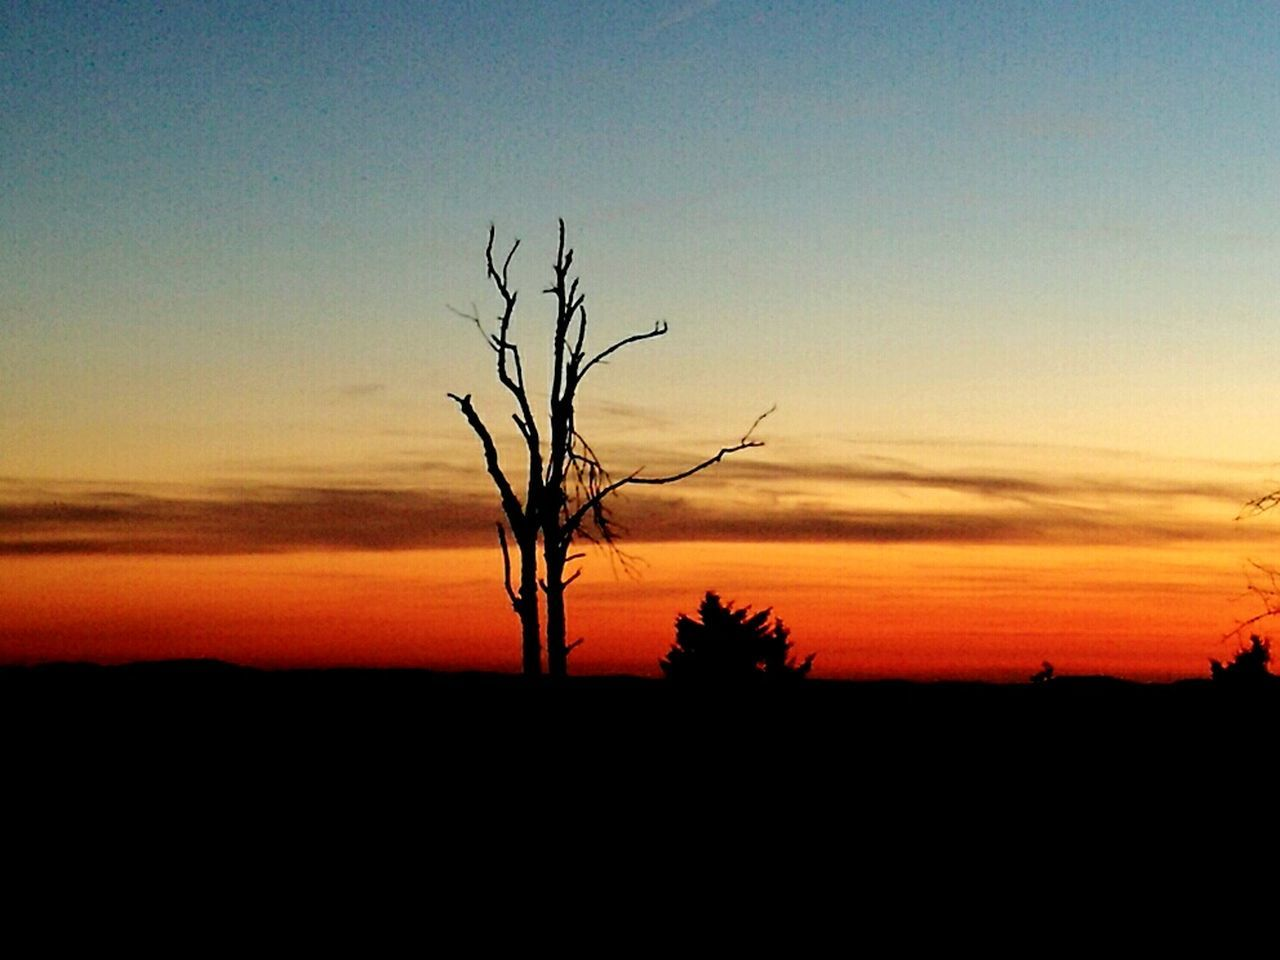 sunset, majestic, silhouette, lone, beauty in nature, tranquility, tranquil scene, landscape, nature, scenics, bare tree, solitude, remote, isolated, horizon over land, tree, outdoors, tree trunk, no people, clear sky, branch, sky